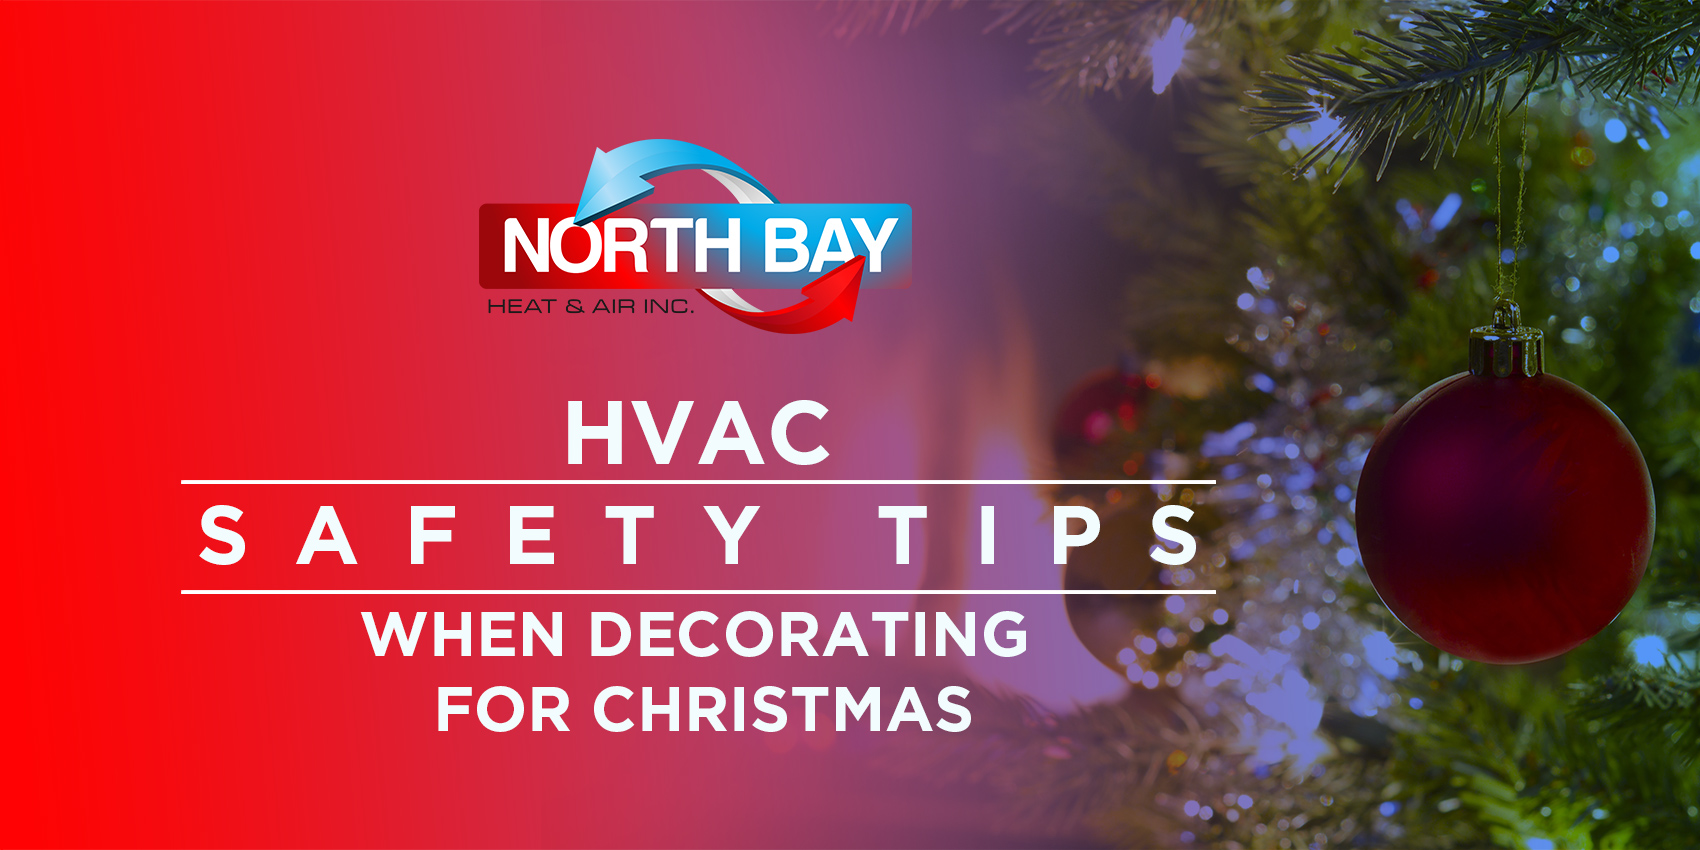 HVAC Safety Tips When Decorating for Christmas